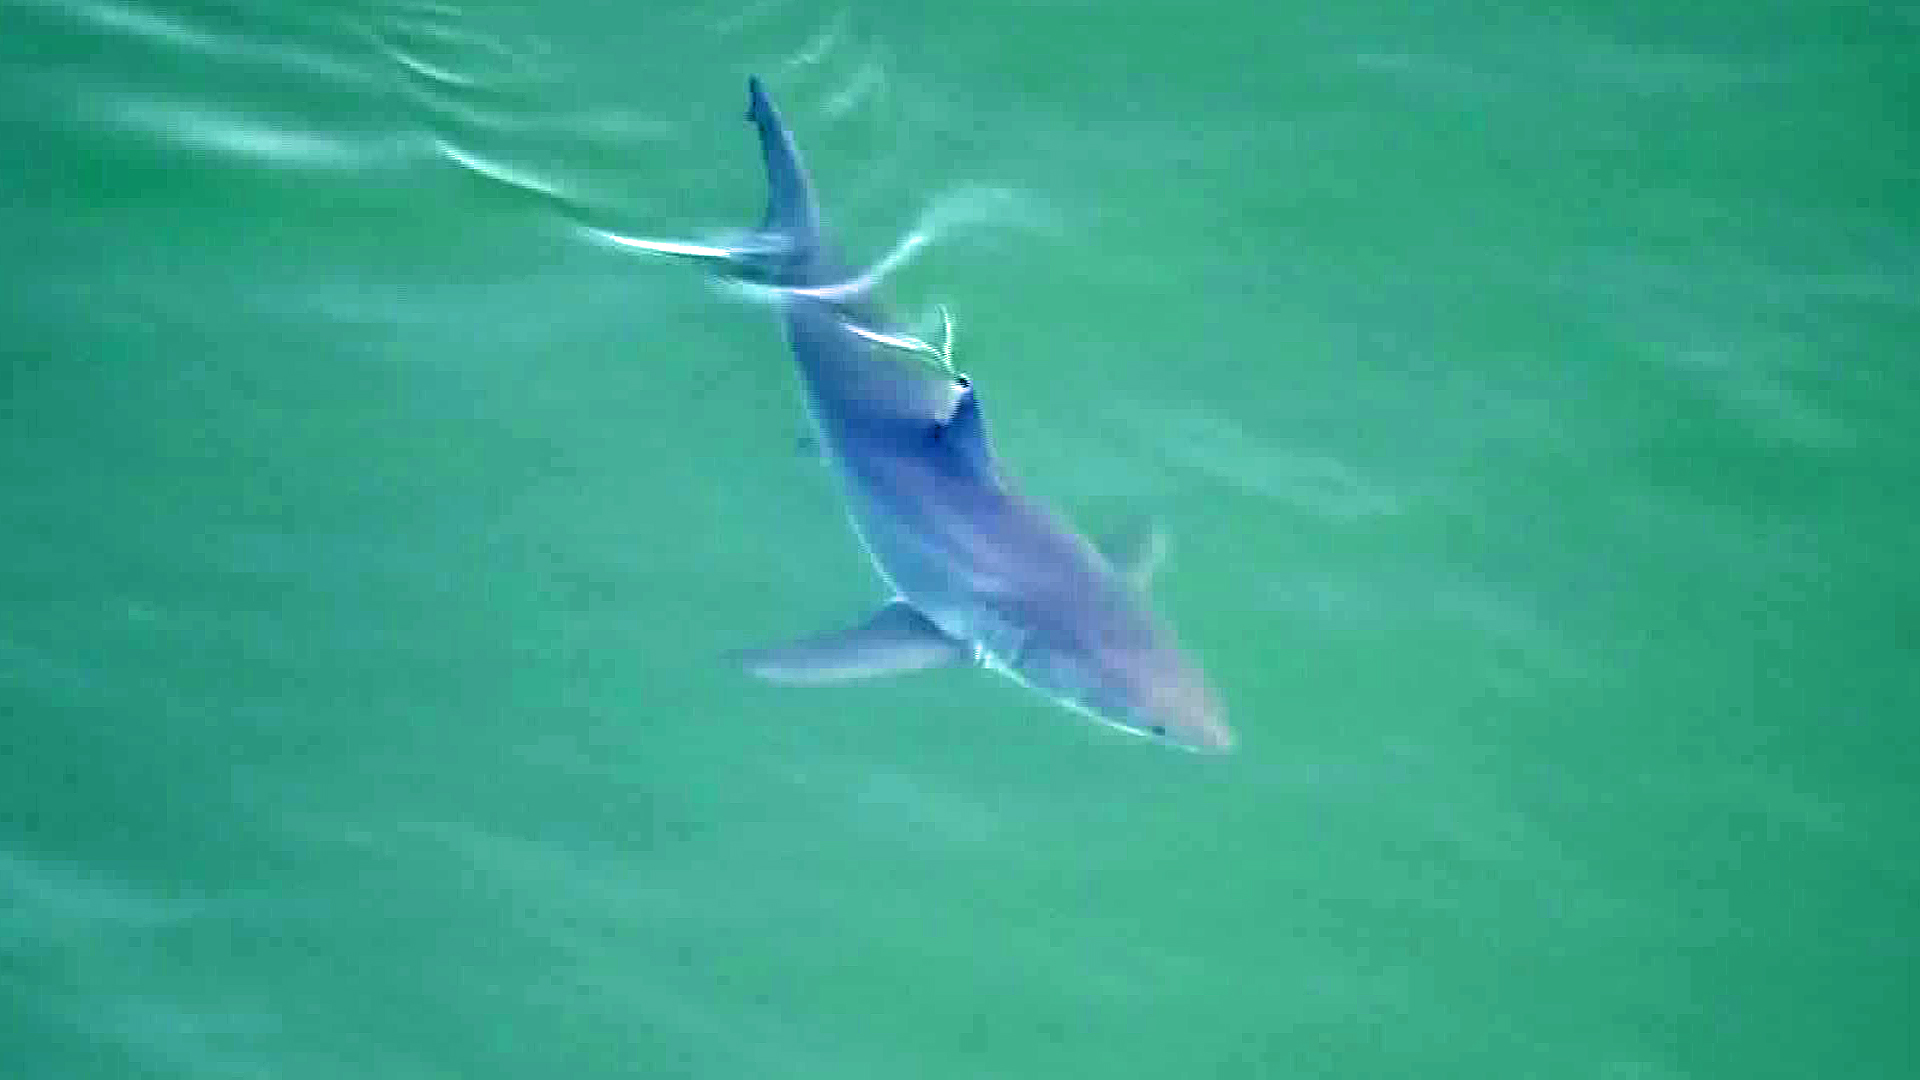 A shark is seen off the coast of Southern California on May 11, 2017. (Credit: KTLA)